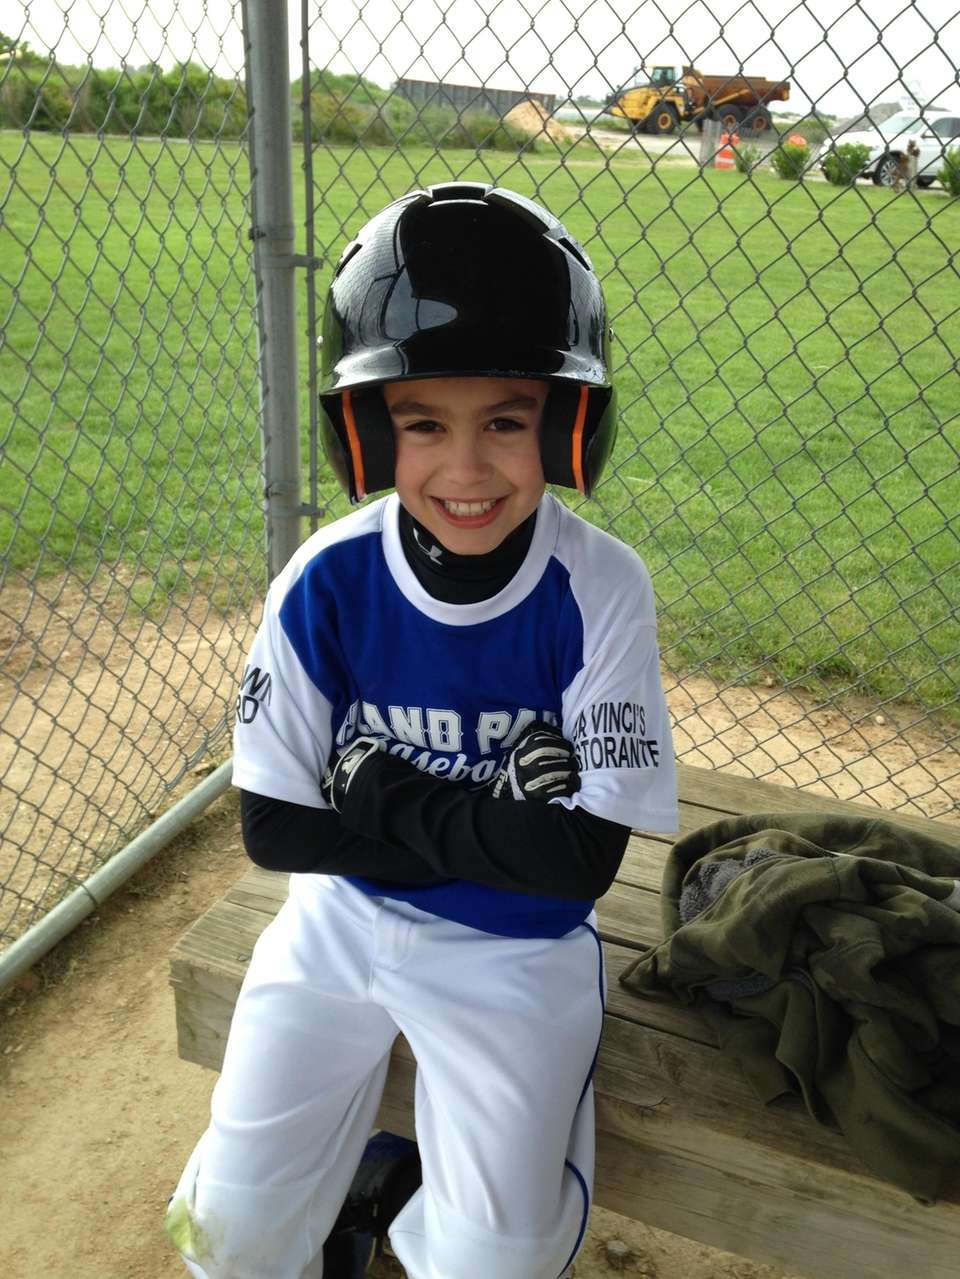 Ryan Catapano 9 years old continuing Summer League